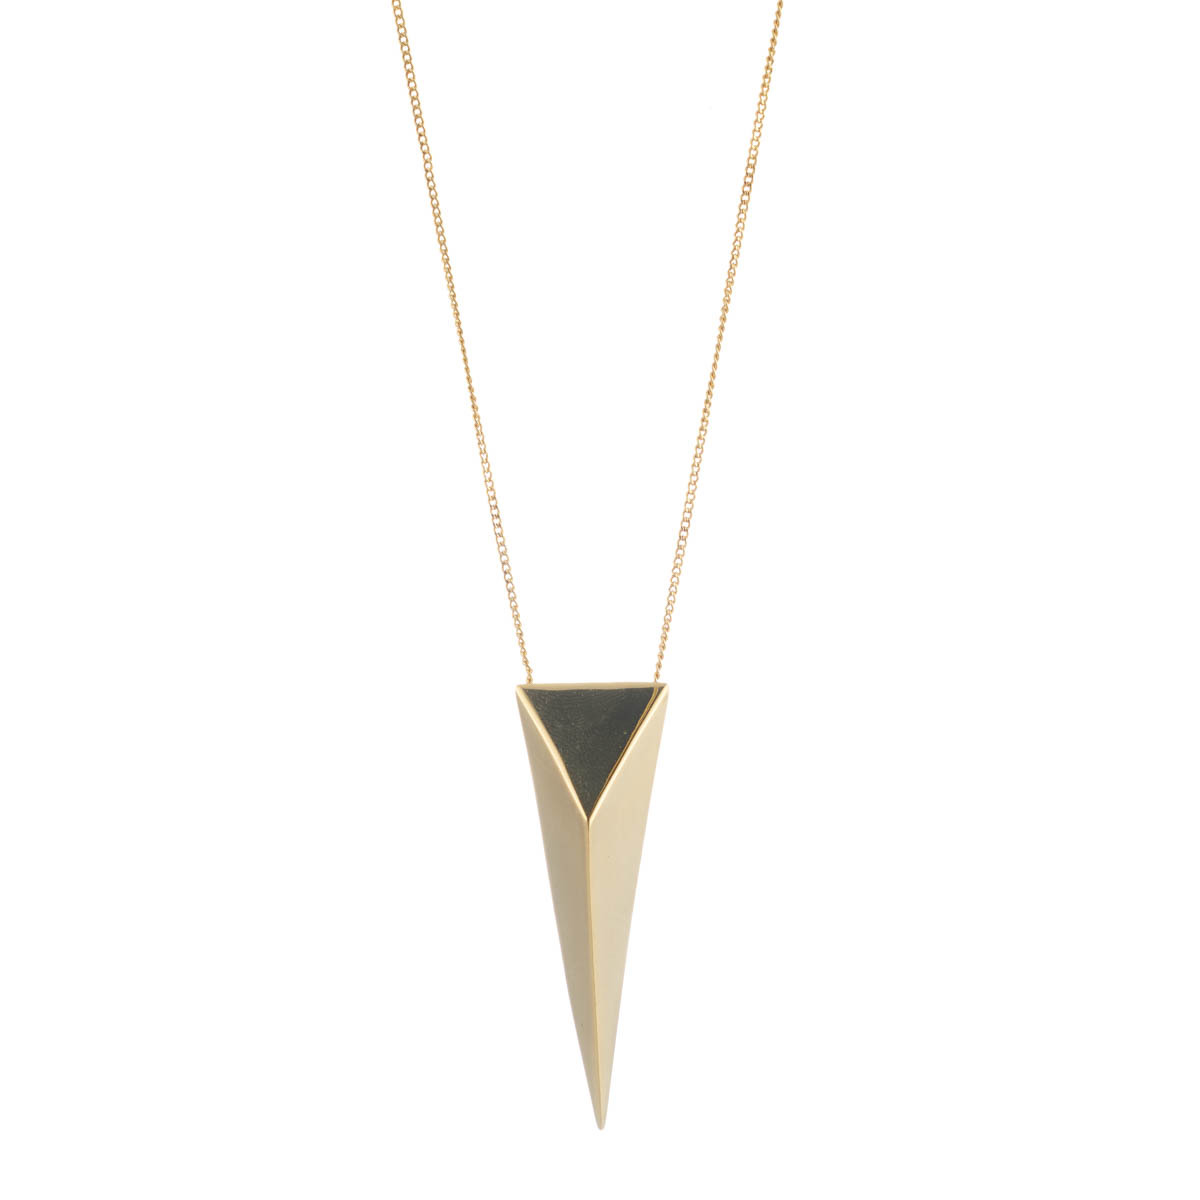 Large Pyramid Pendant Necklace